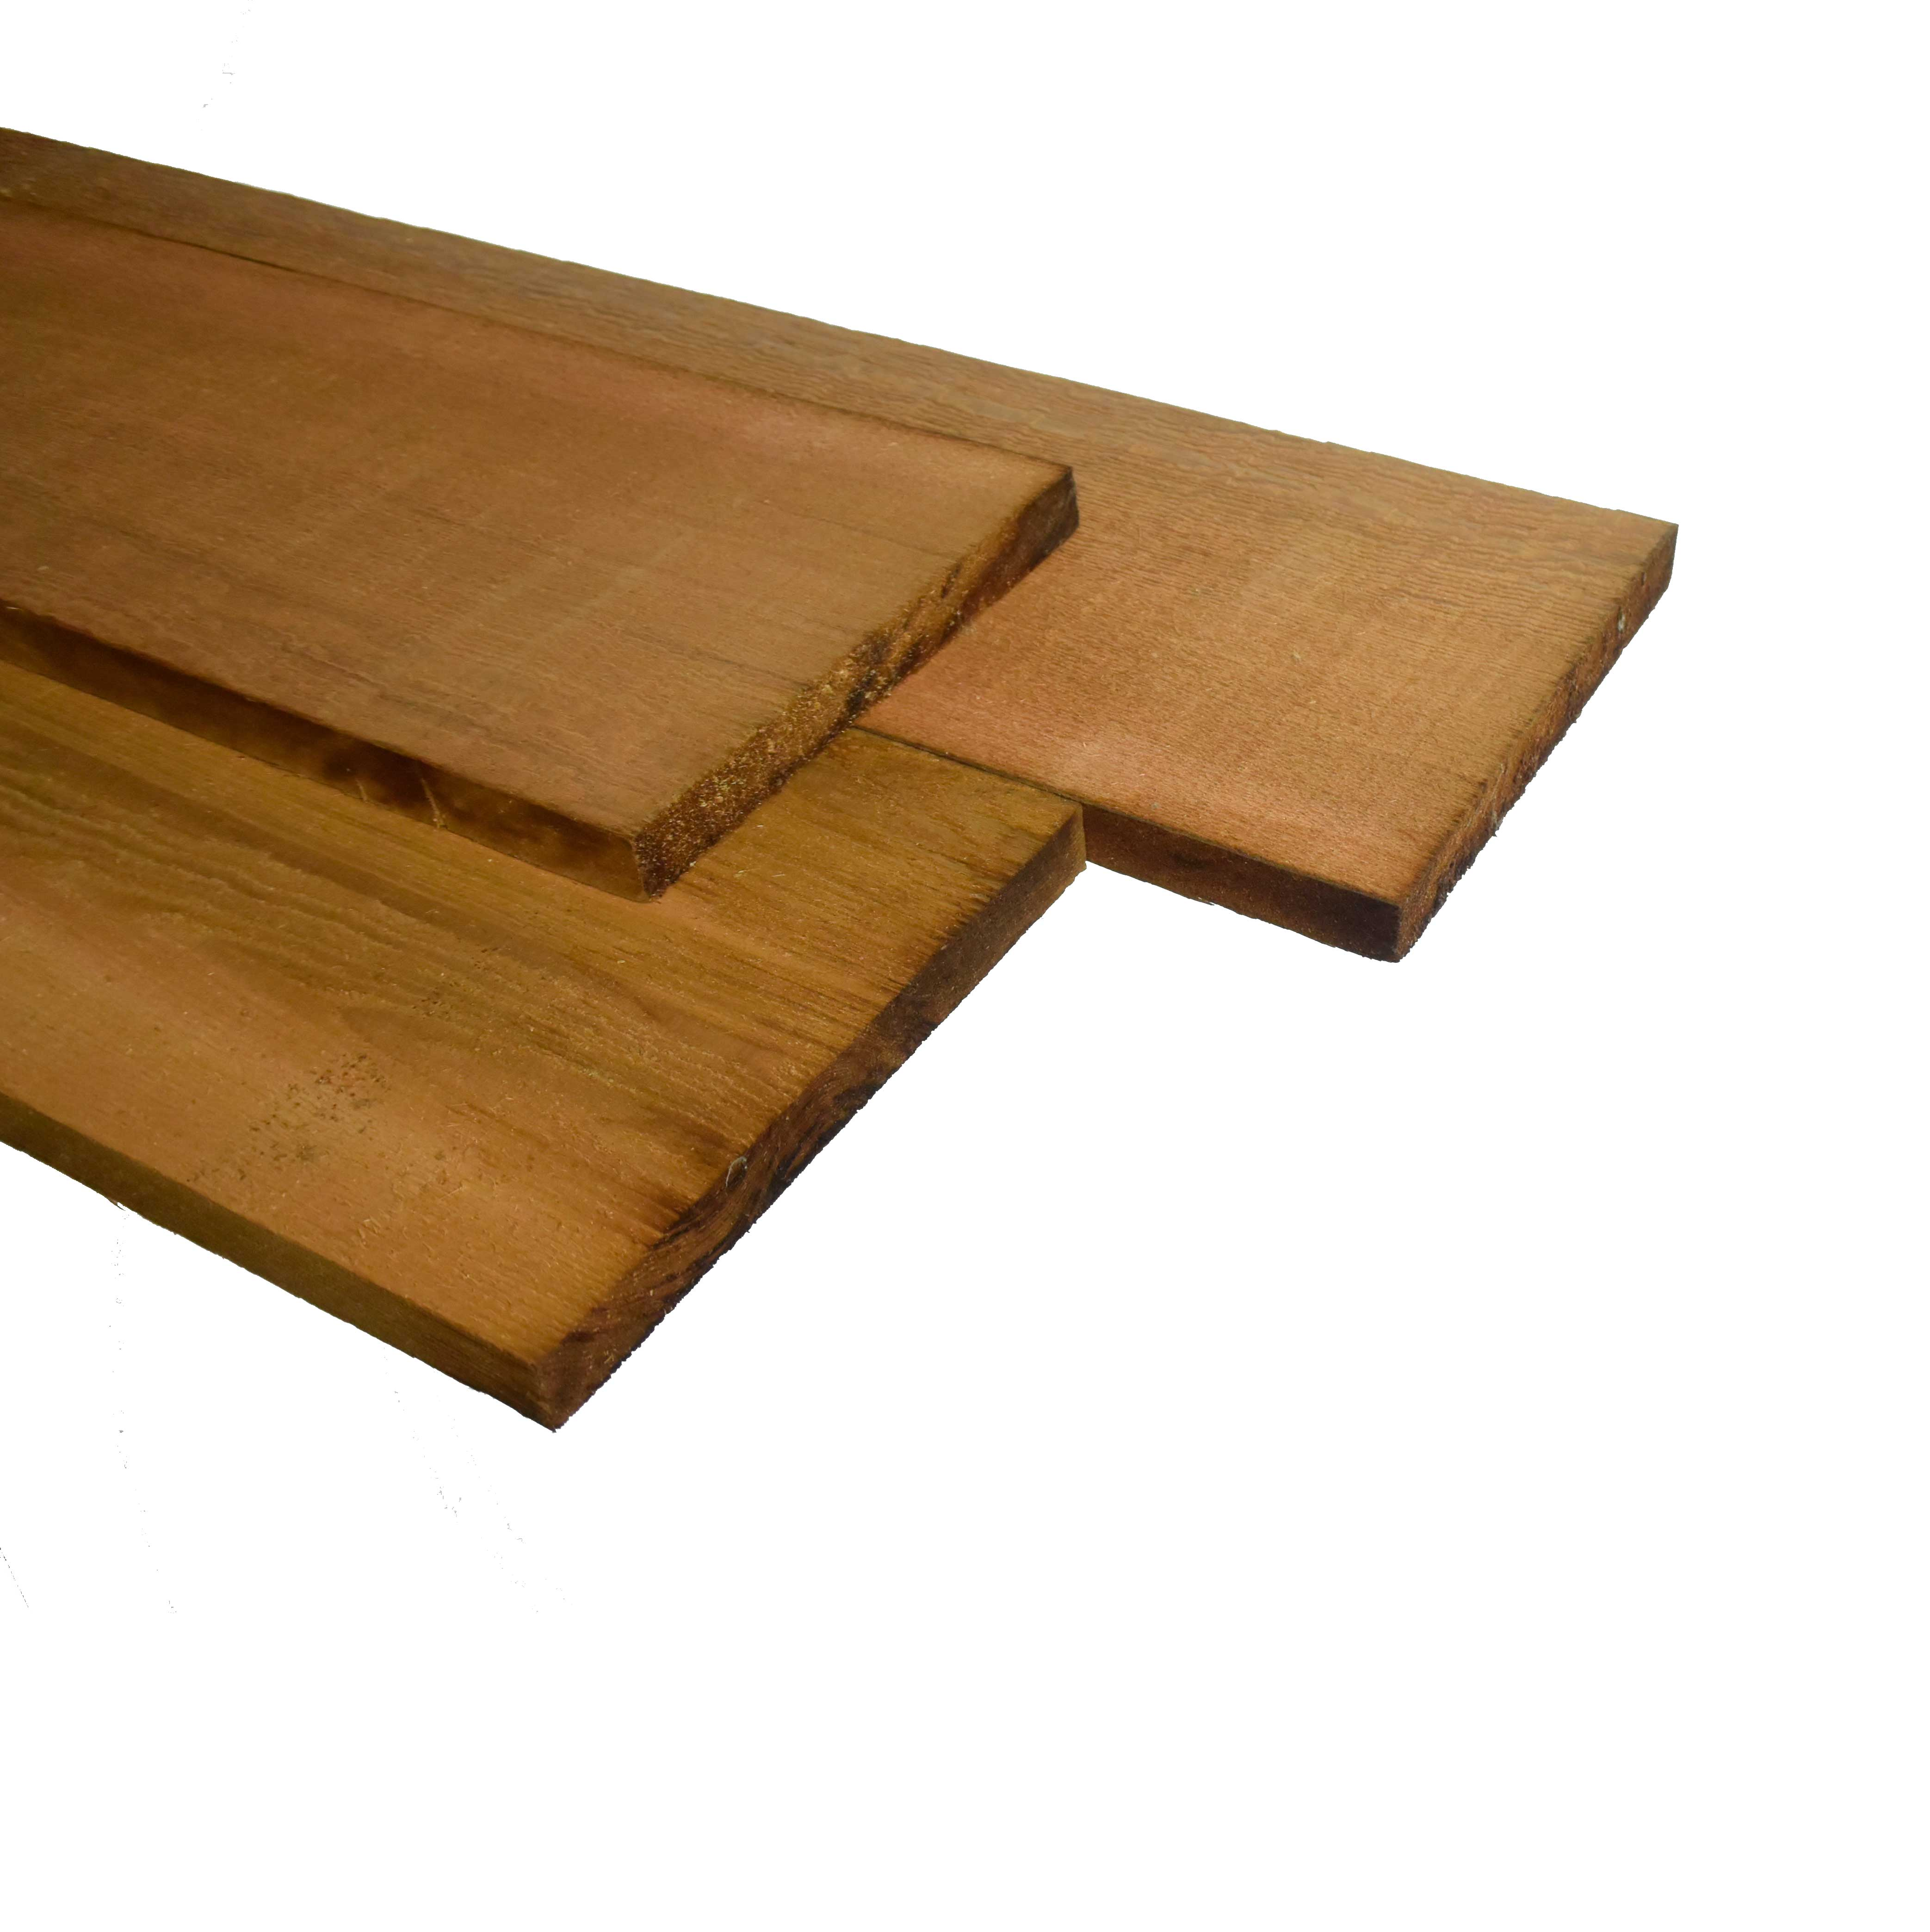 Western-Red-Cedar-Plank-ruw-23x205mm-(2)